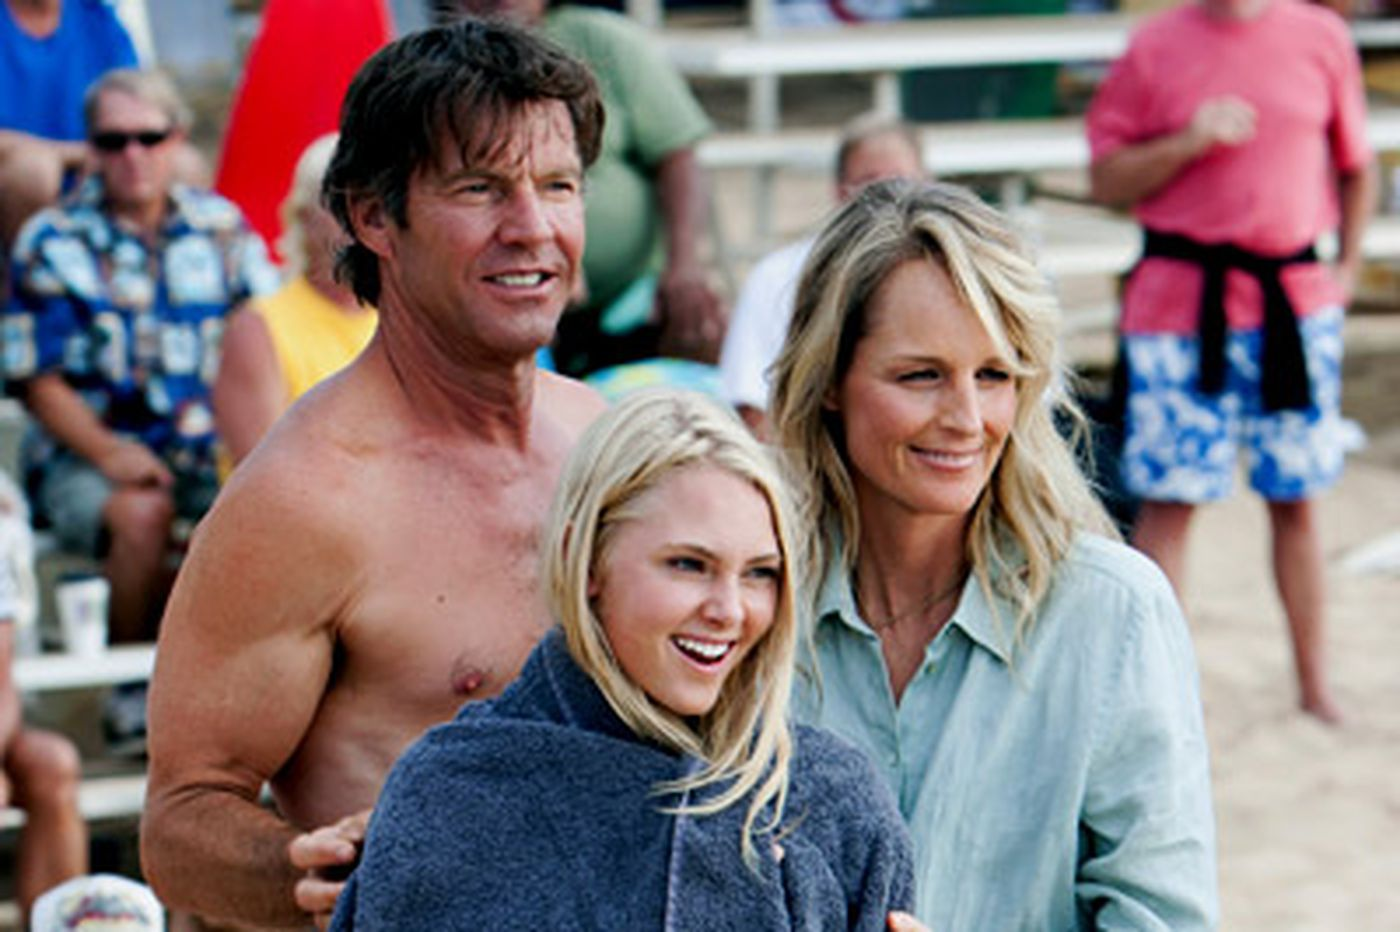 Fateful day of faith-filled surfer tests her resolve - viewers', too